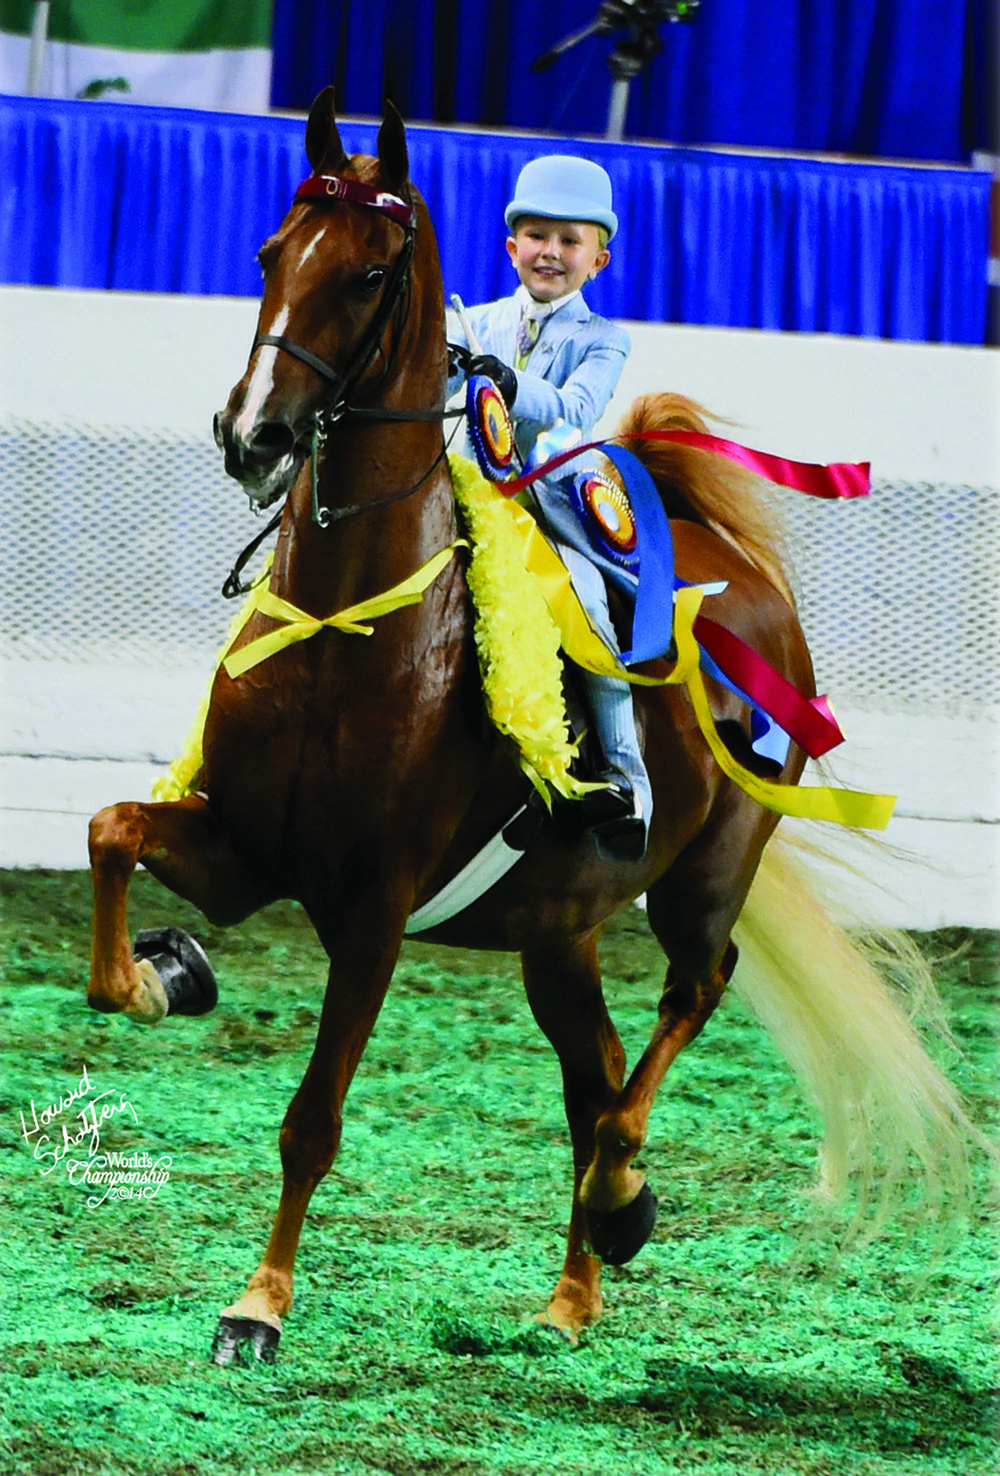 At the World's Championships in 2014, Molly Crim found herself in need of a walk and trot mount, so Reese and Erin Richey offered their daughter Reagan's horse, Miraculous Odds.